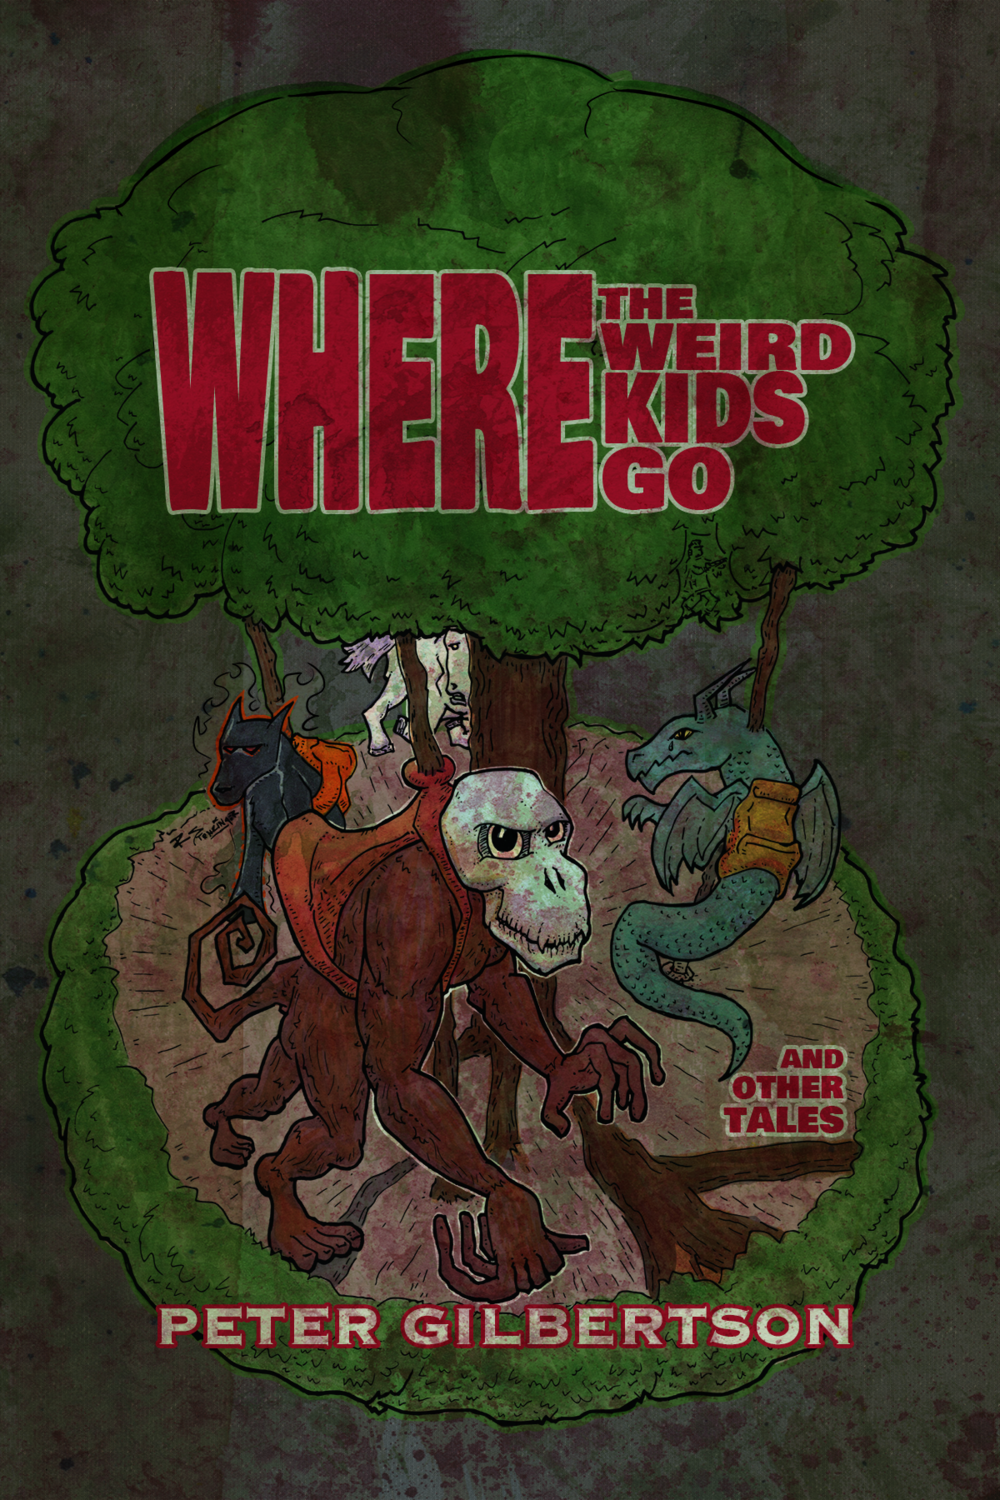 The final cover of Where the Weird Kids Go